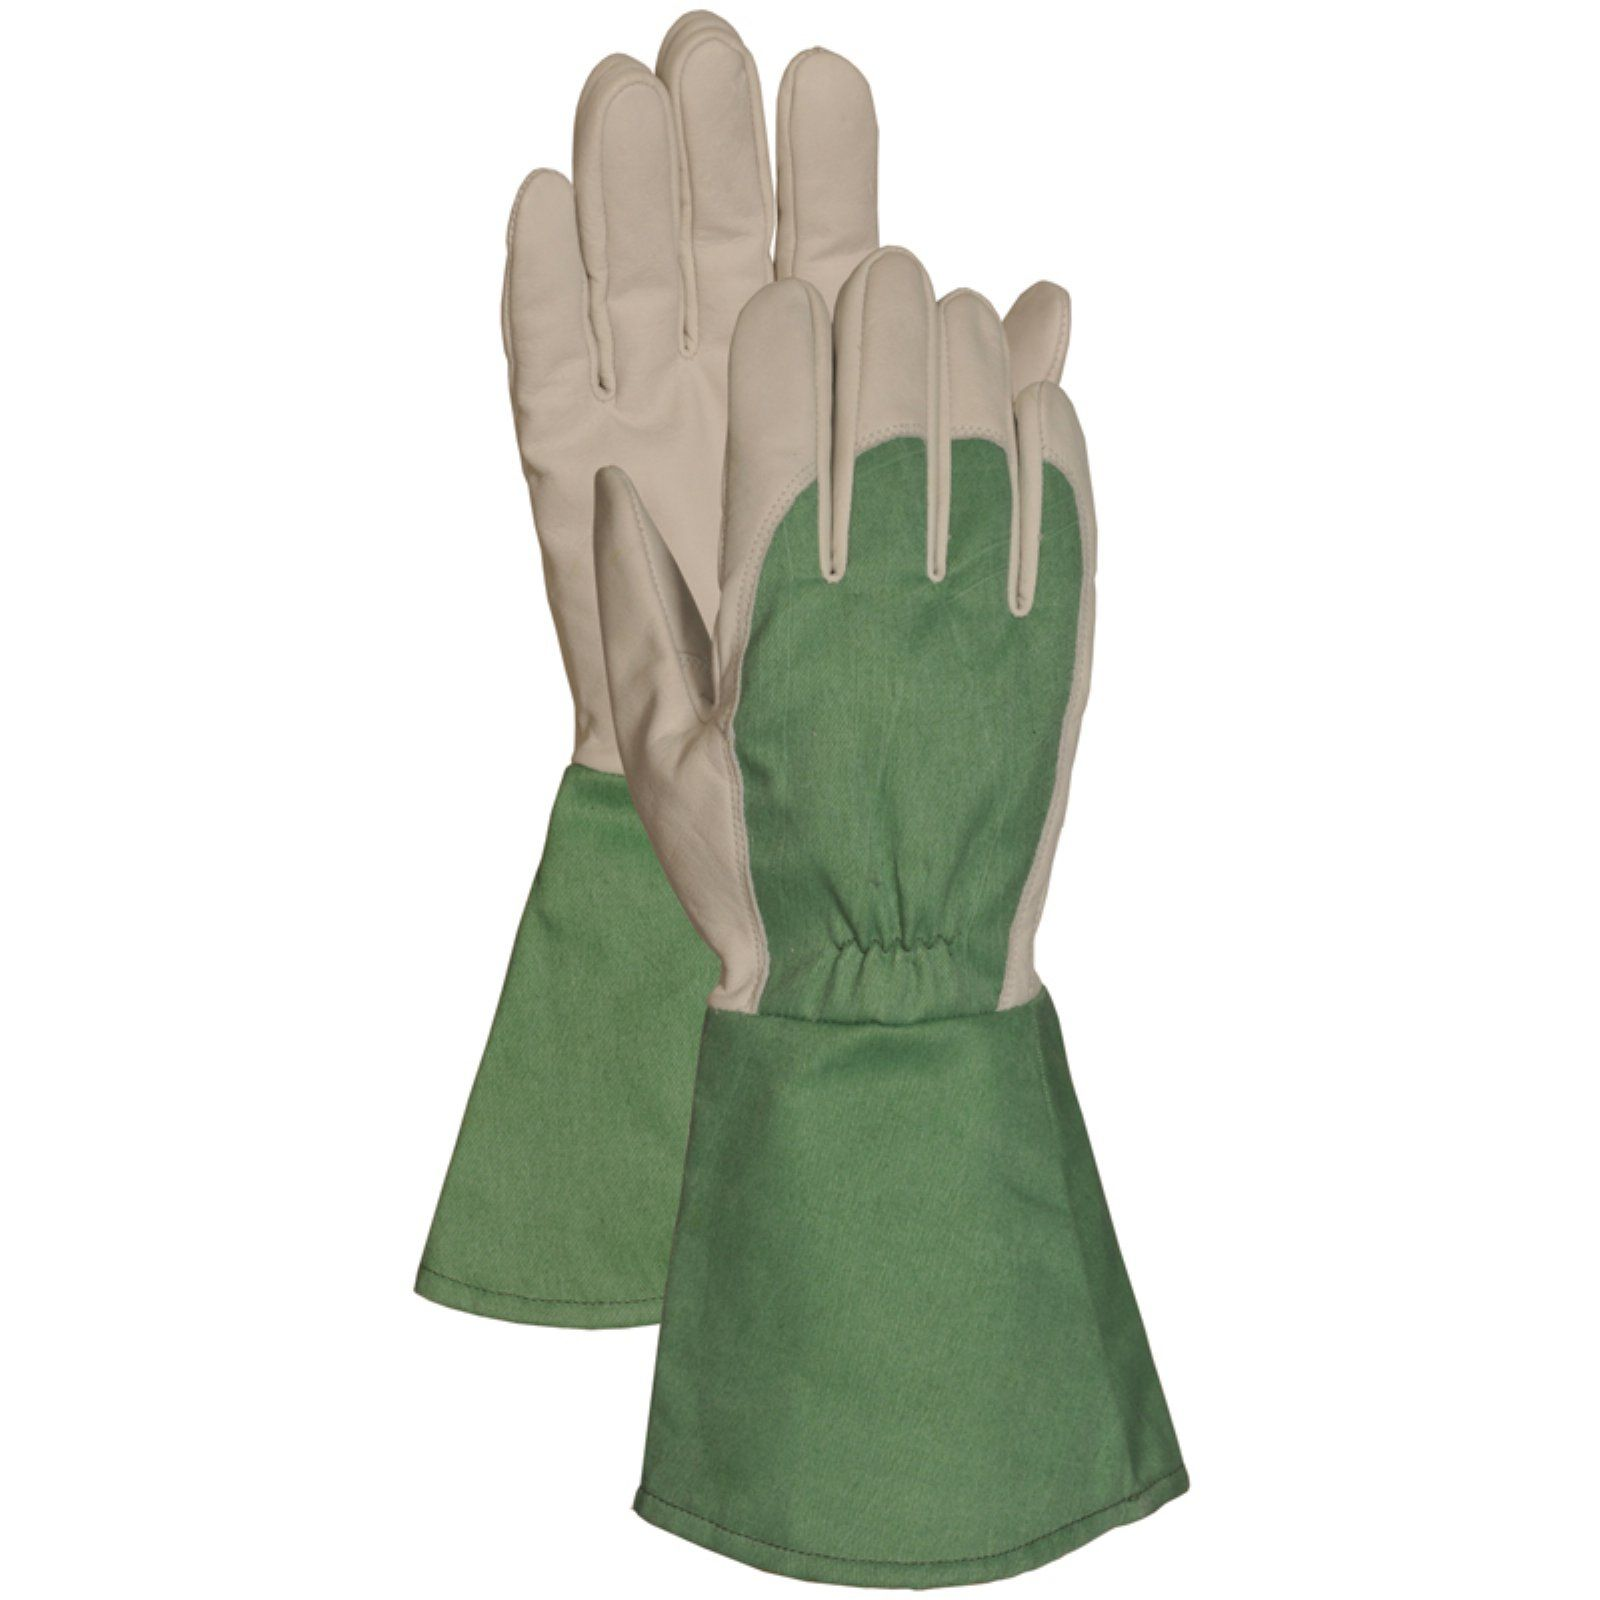 Bellingham Glove C7352XL Extra Large Green Thorn Resistant